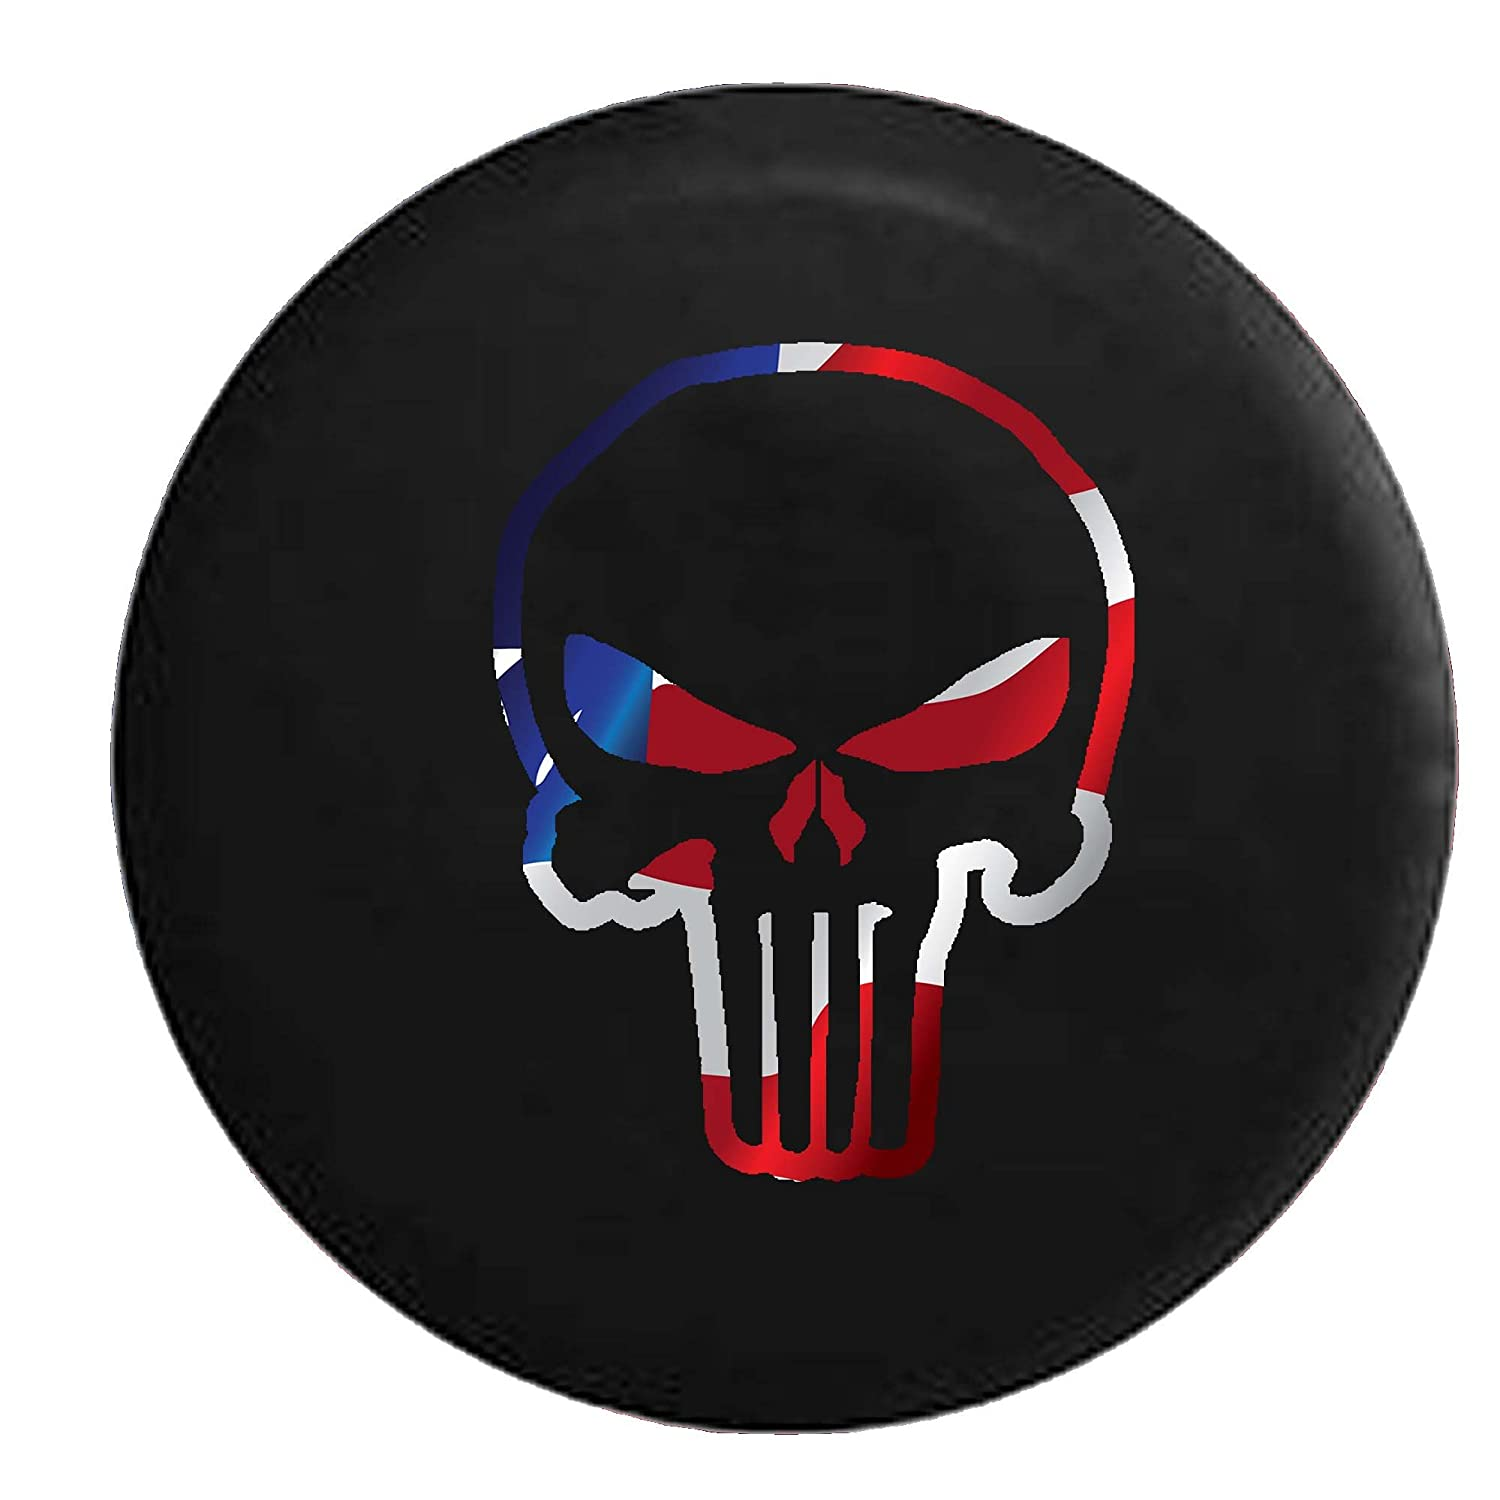 Punisher Skull Shadow Edition Spare Tire Cover Vinyl Black 33 in American Unlimited